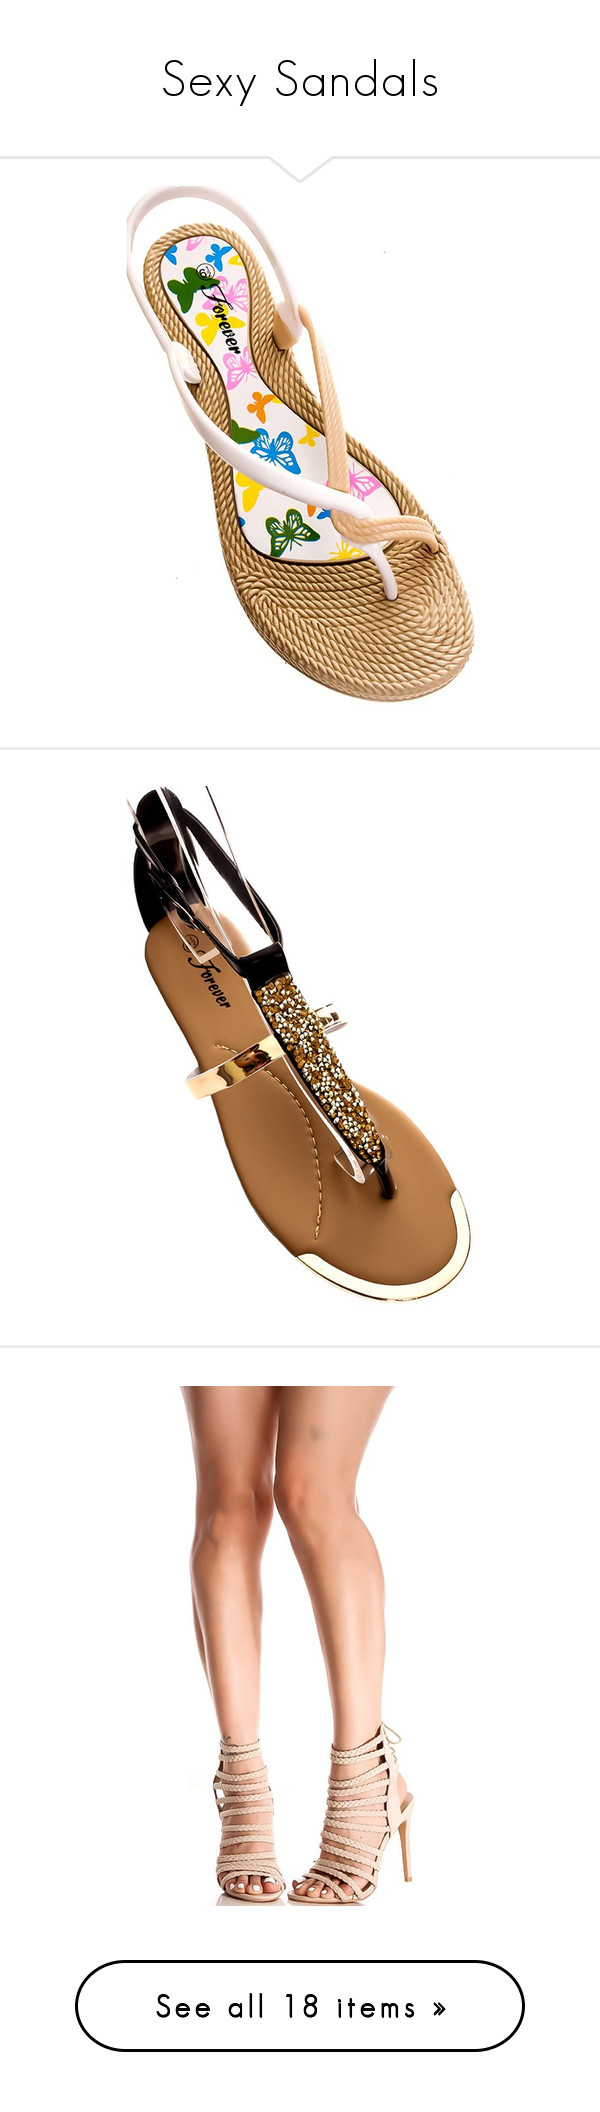 """""""Sexy Sandals"""" by snow-75 ❤ liked on Polyvore featuring shoes, sandals, pumps, nude high heel pumps, nude pumps, nude suede shoes, open-toe pumps, suede pumps, boots and over the knee lace up boots"""